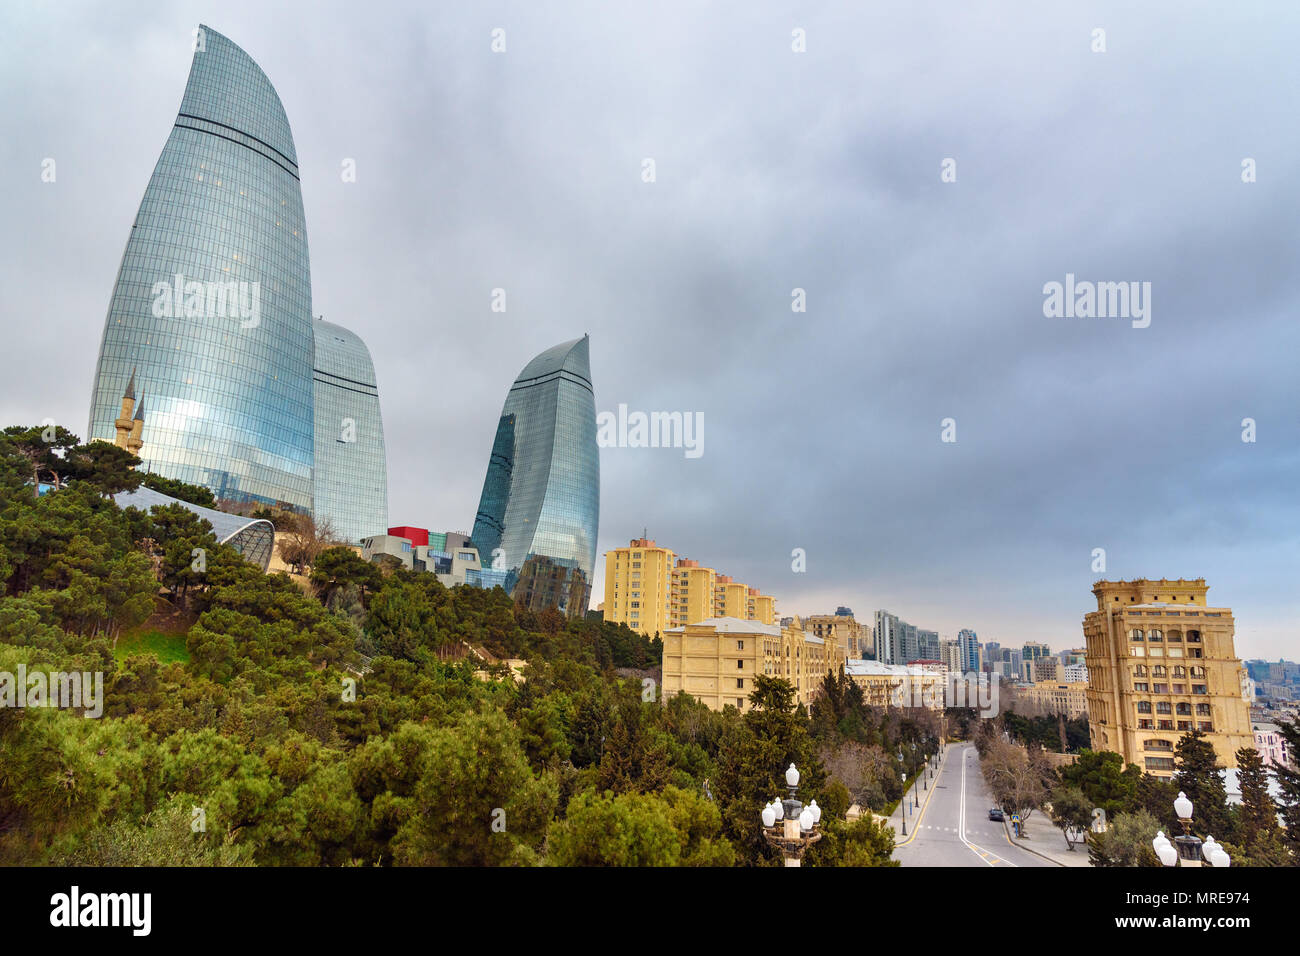 Baku, Azerbaijan - March 11, 2018: View of Flame Towers from Upland park in the evening - Stock Image